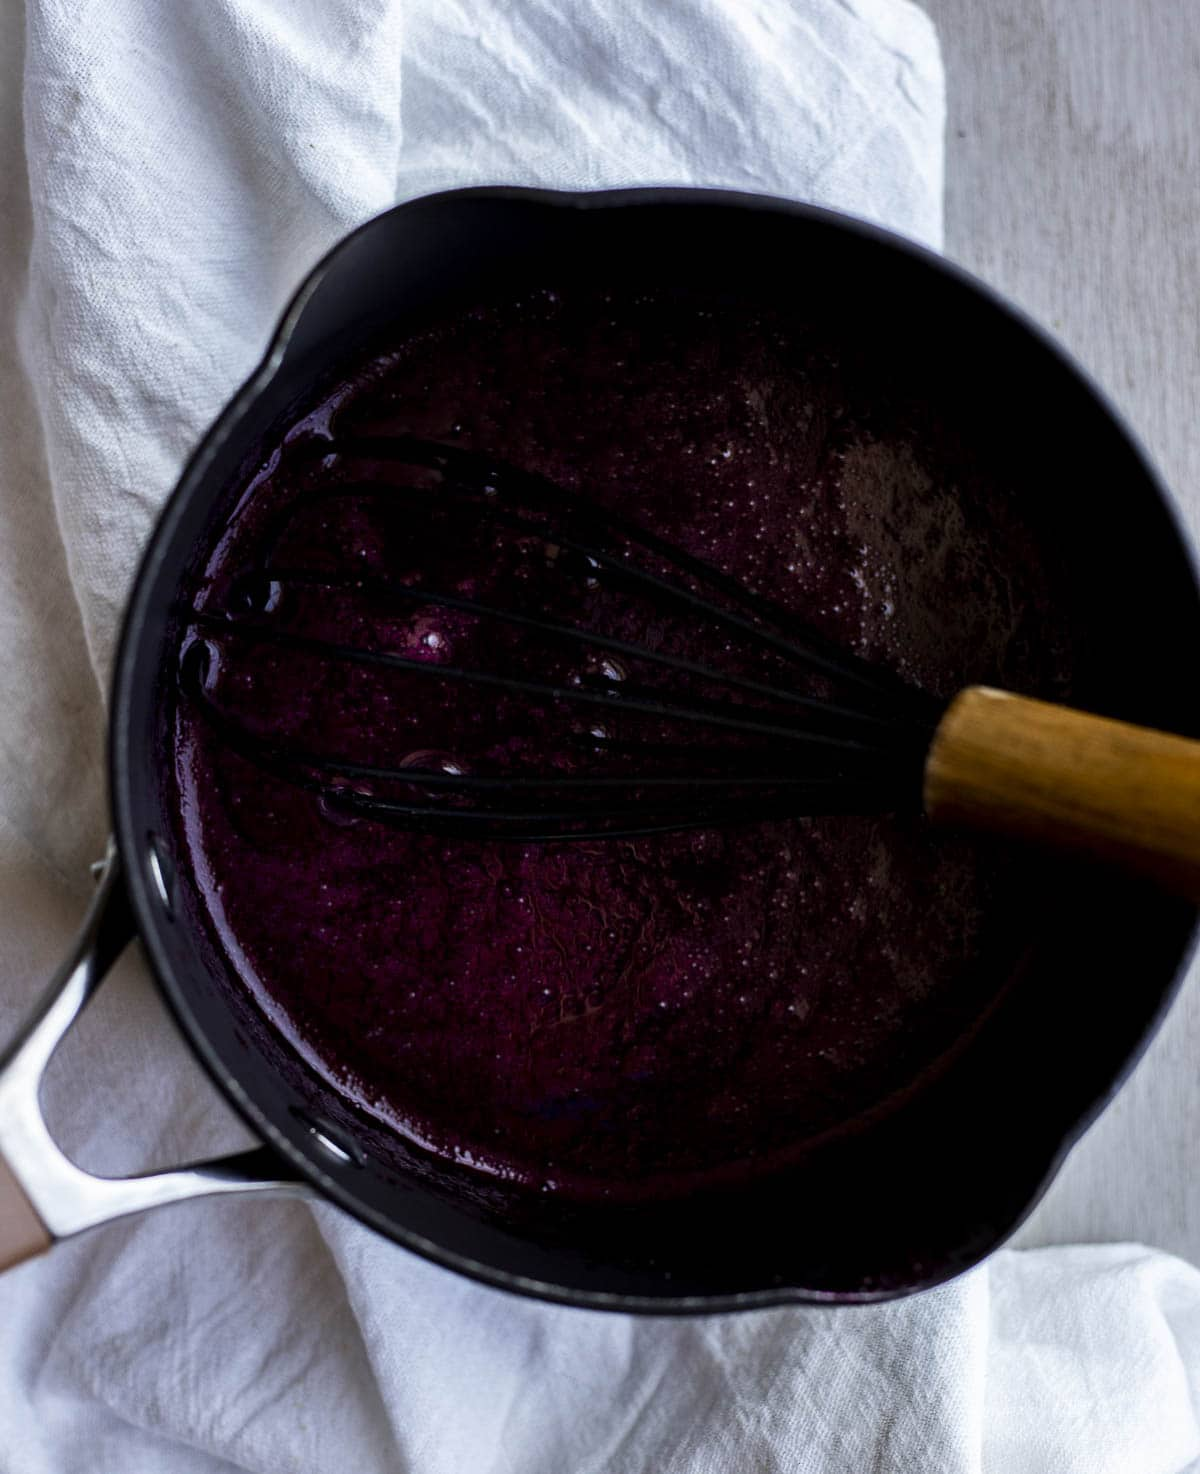 Overhead of blueberry curd being whisked in a sauce pan.